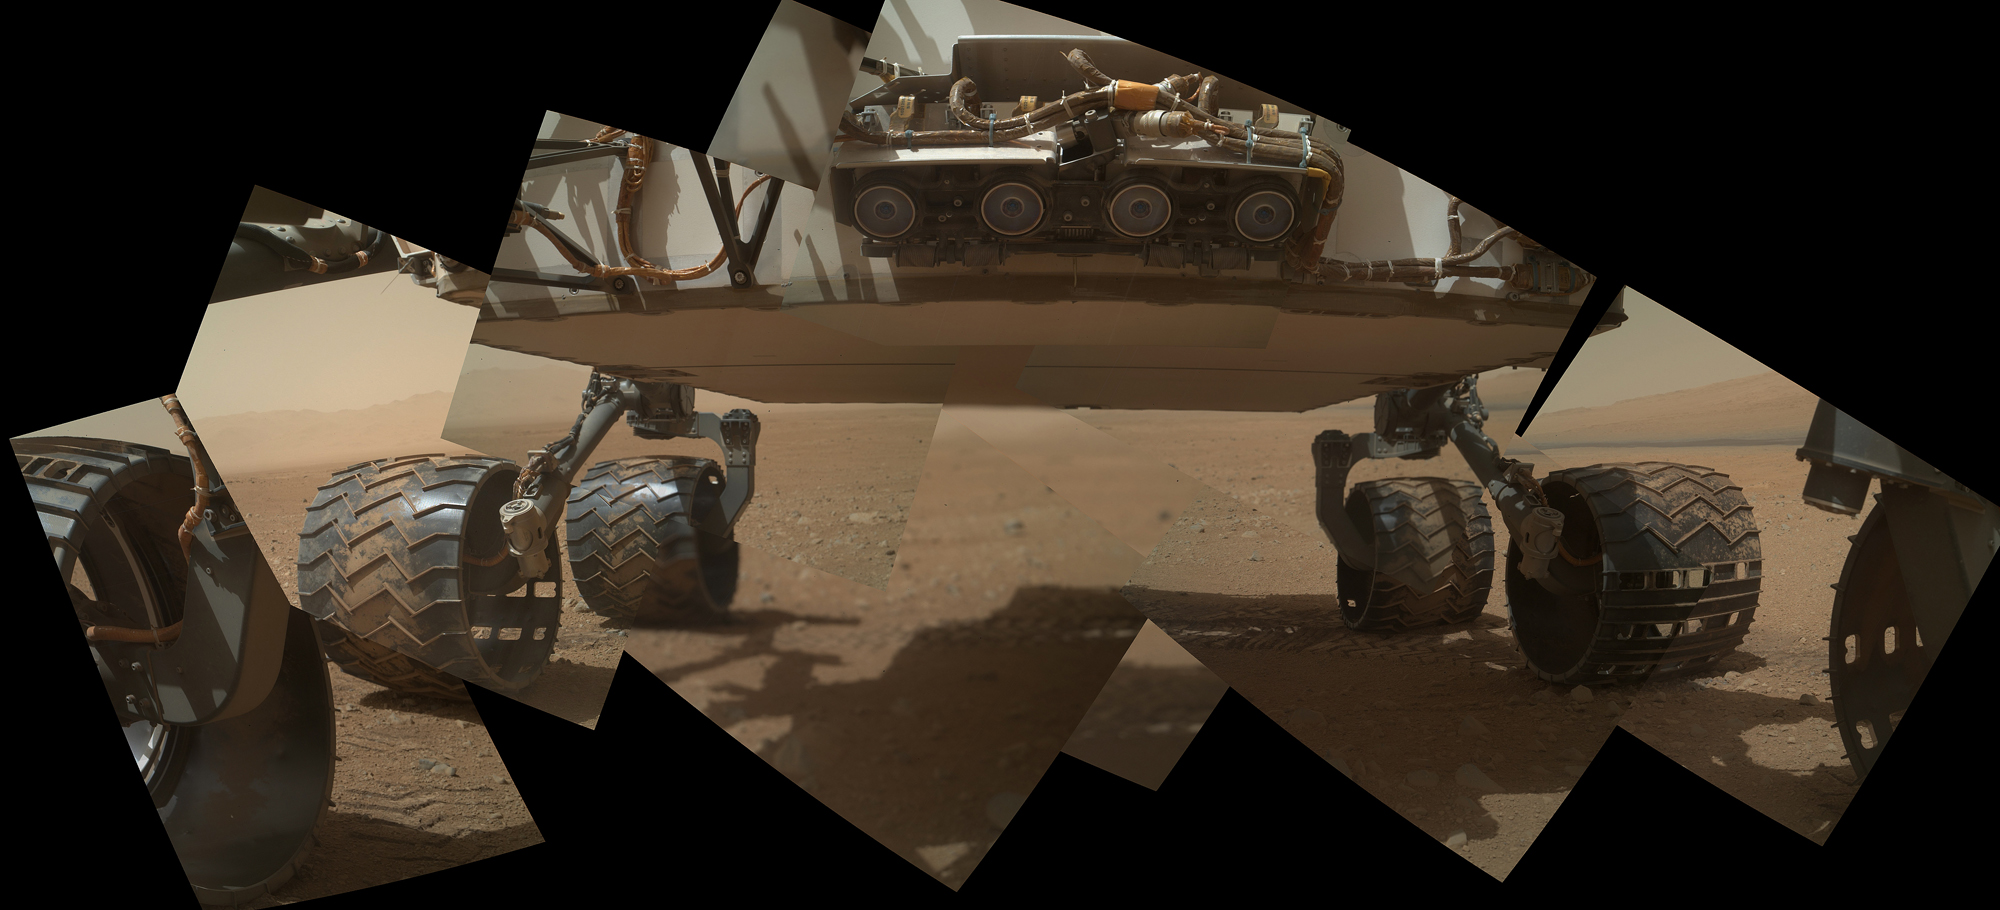 6 Wheels on Mars: Curiosity Rover's Ground-Level View